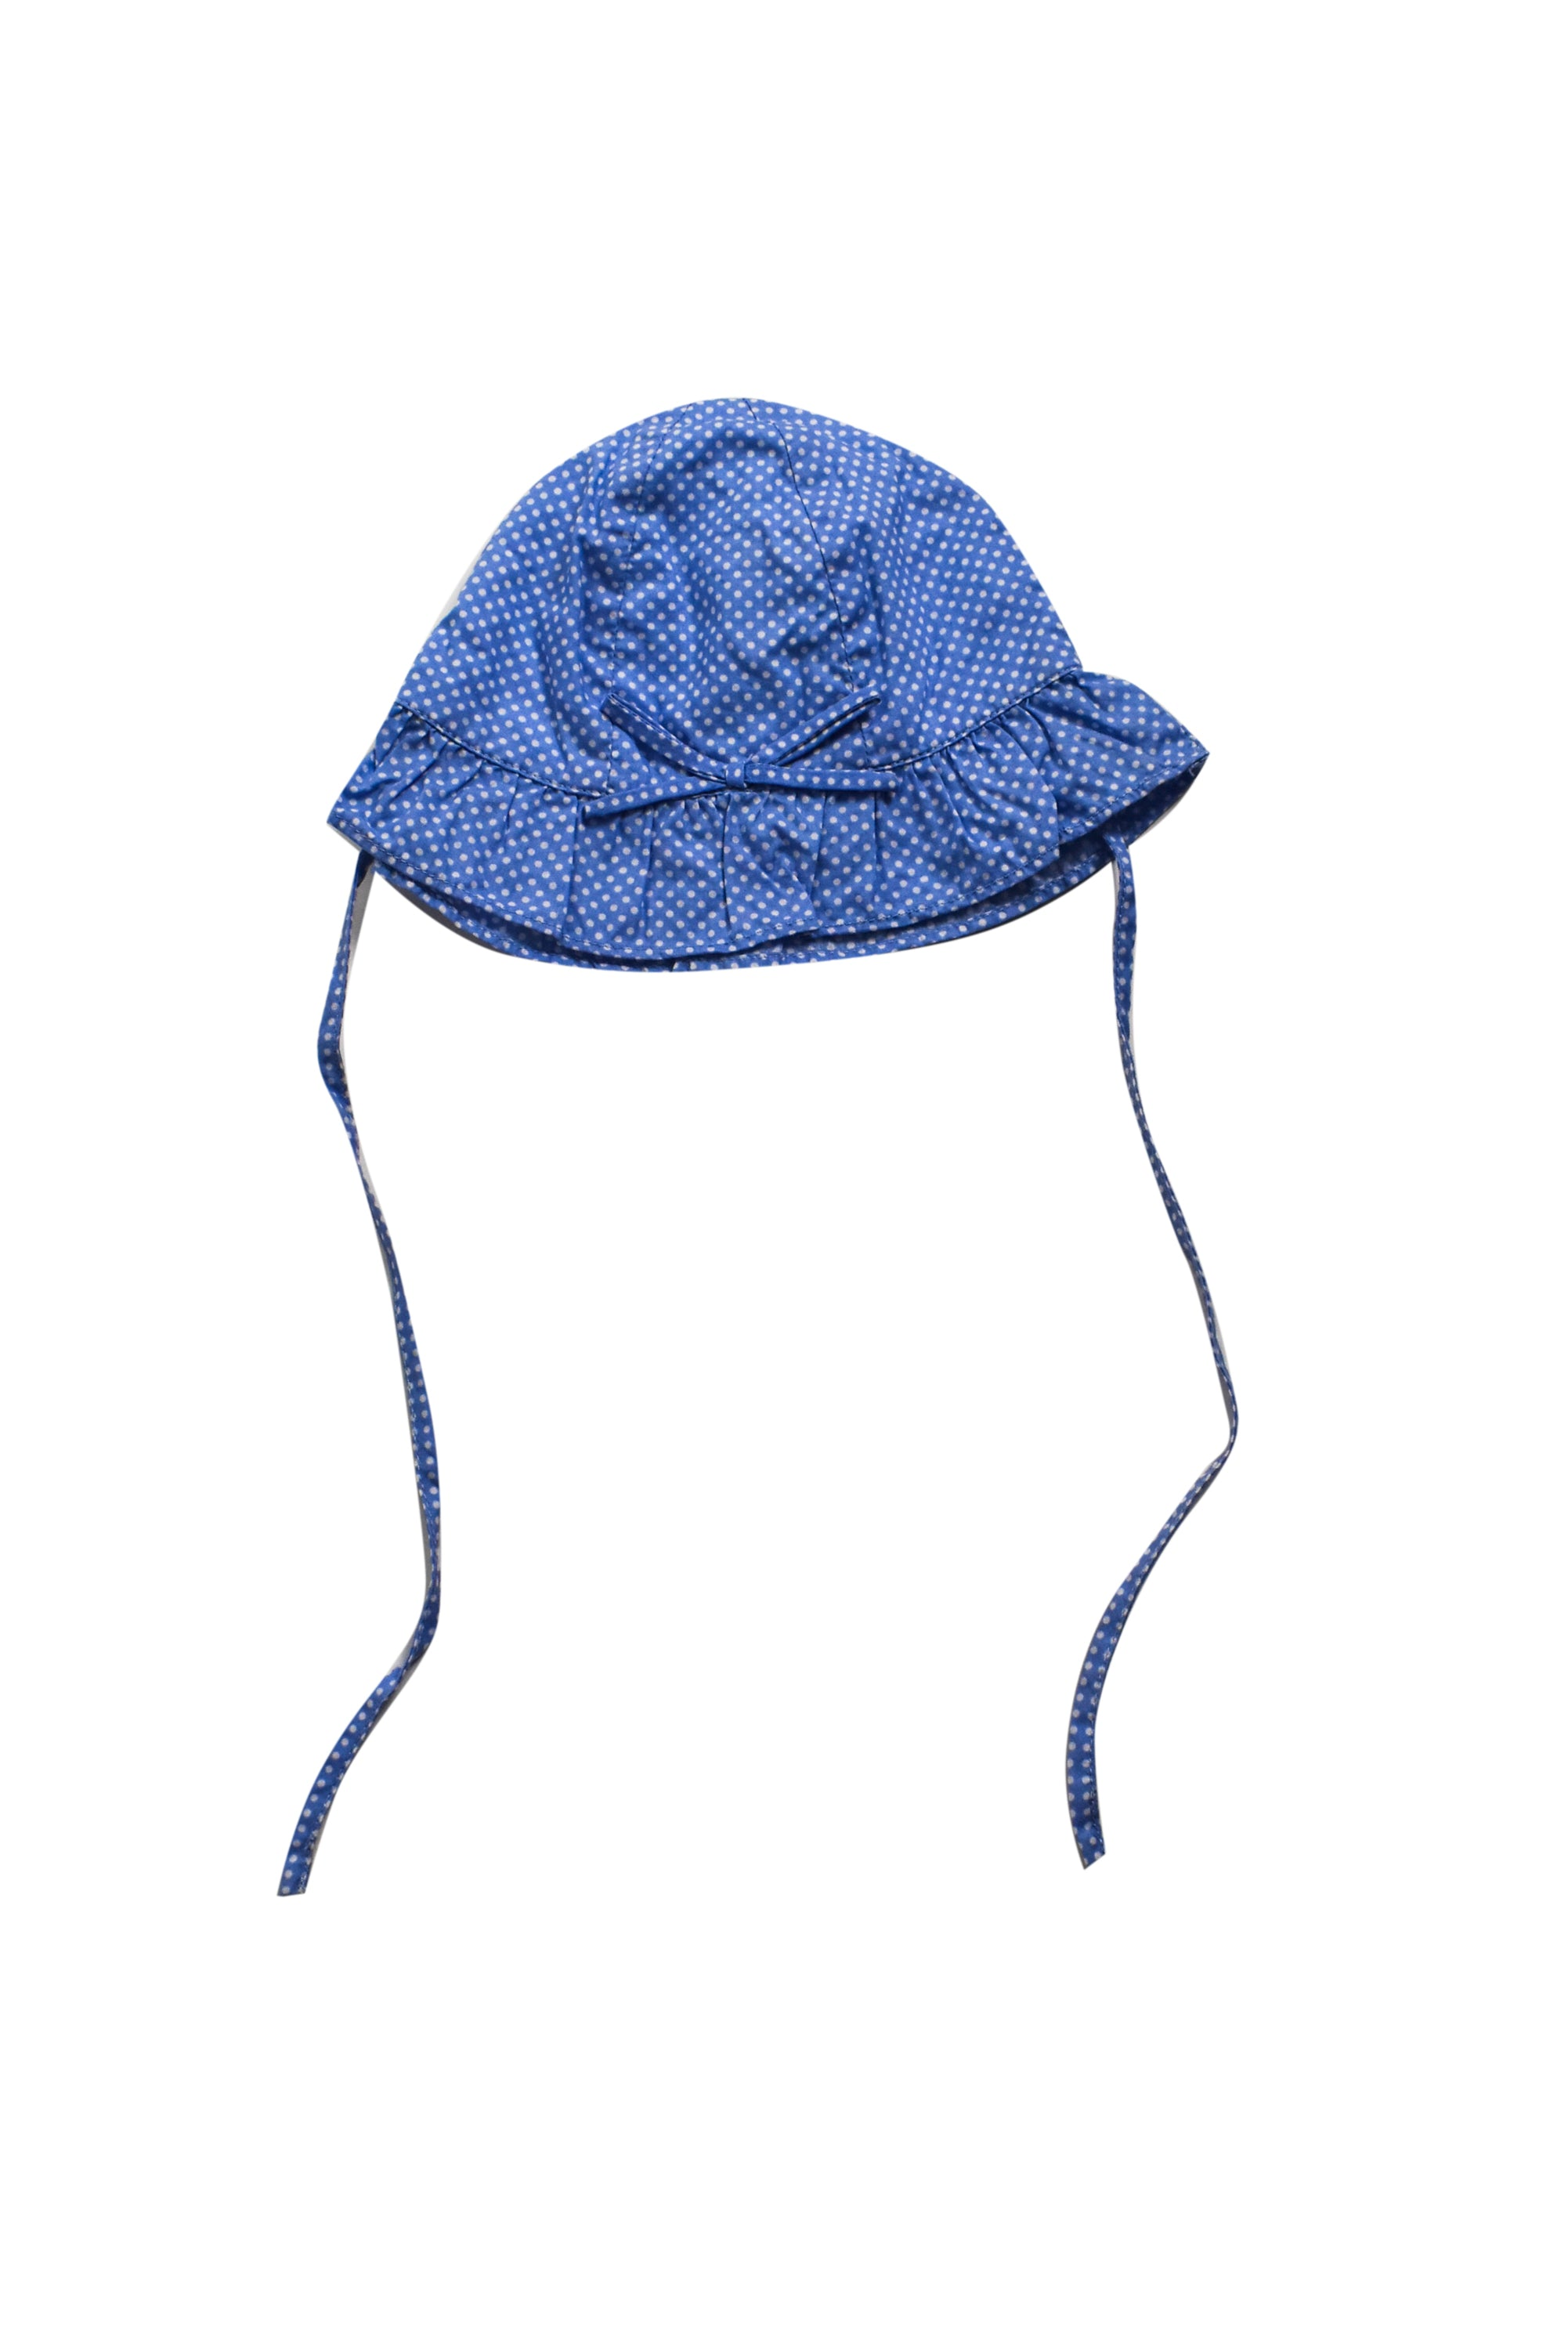 10016330 Jacadi Baby~Hat 0-3M (41cm) at Retykle 624a4463338